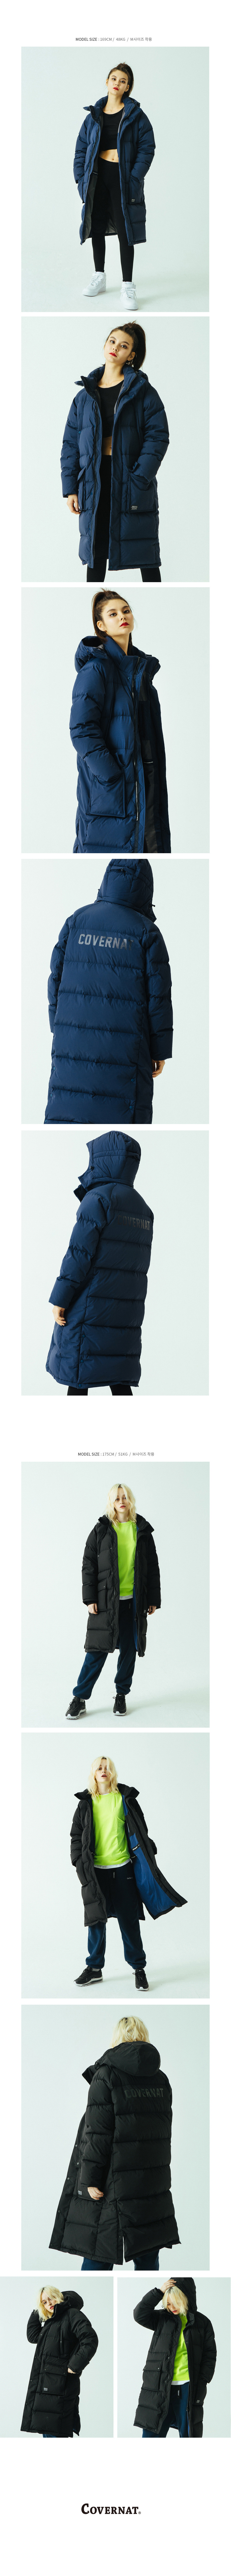 커버낫(COVERNAT) 17A/W DUCK DOWN BENCH LONG PARKA BLACK